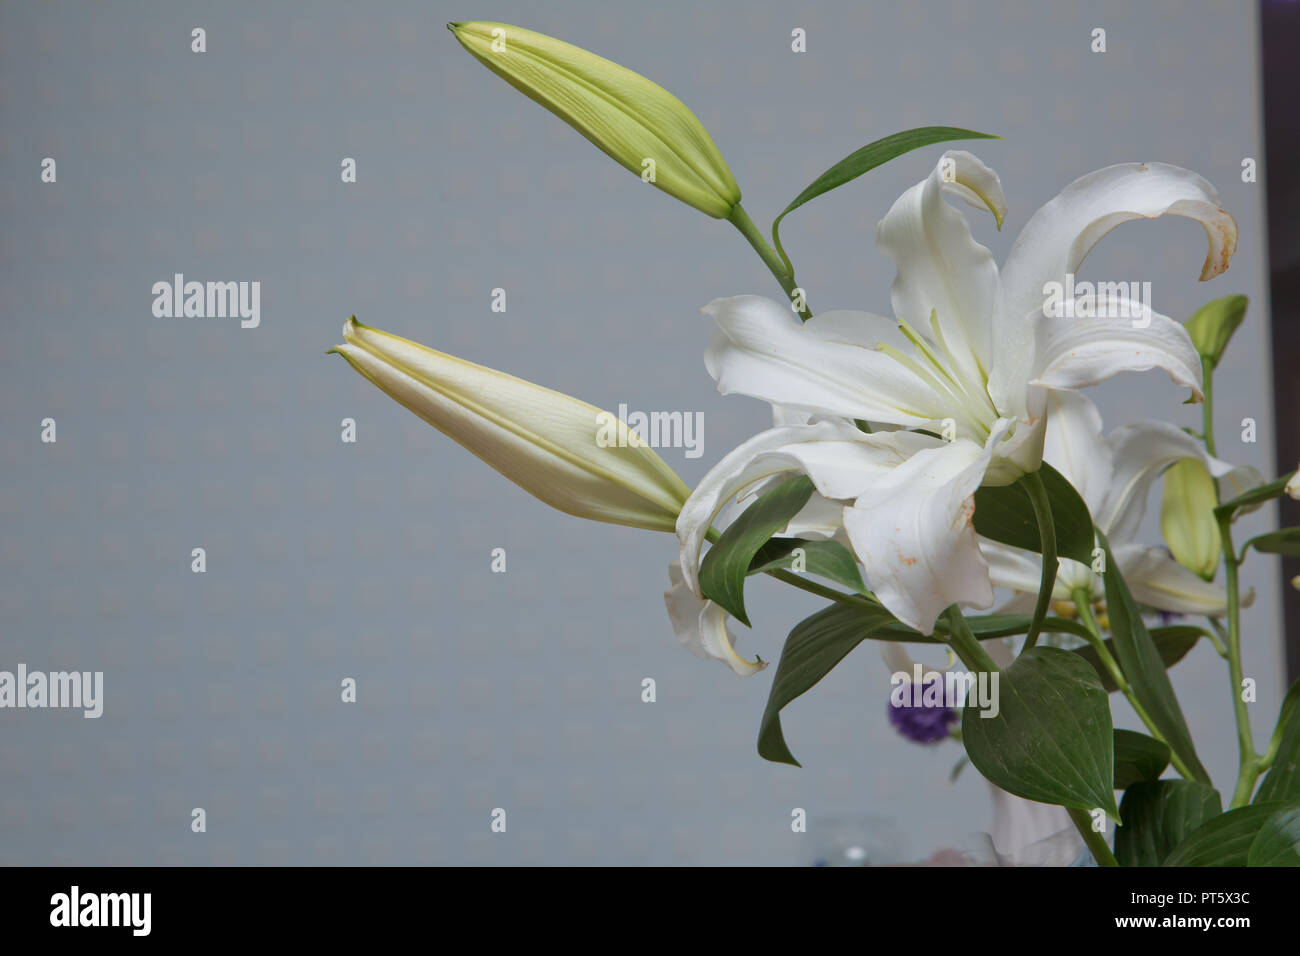 Beautiful white gentle tulips close-up on a white background. Elegant white double tulip with petals open. Closeup of flower head, isolated on white background, horizontal, copy space. - Stock Image